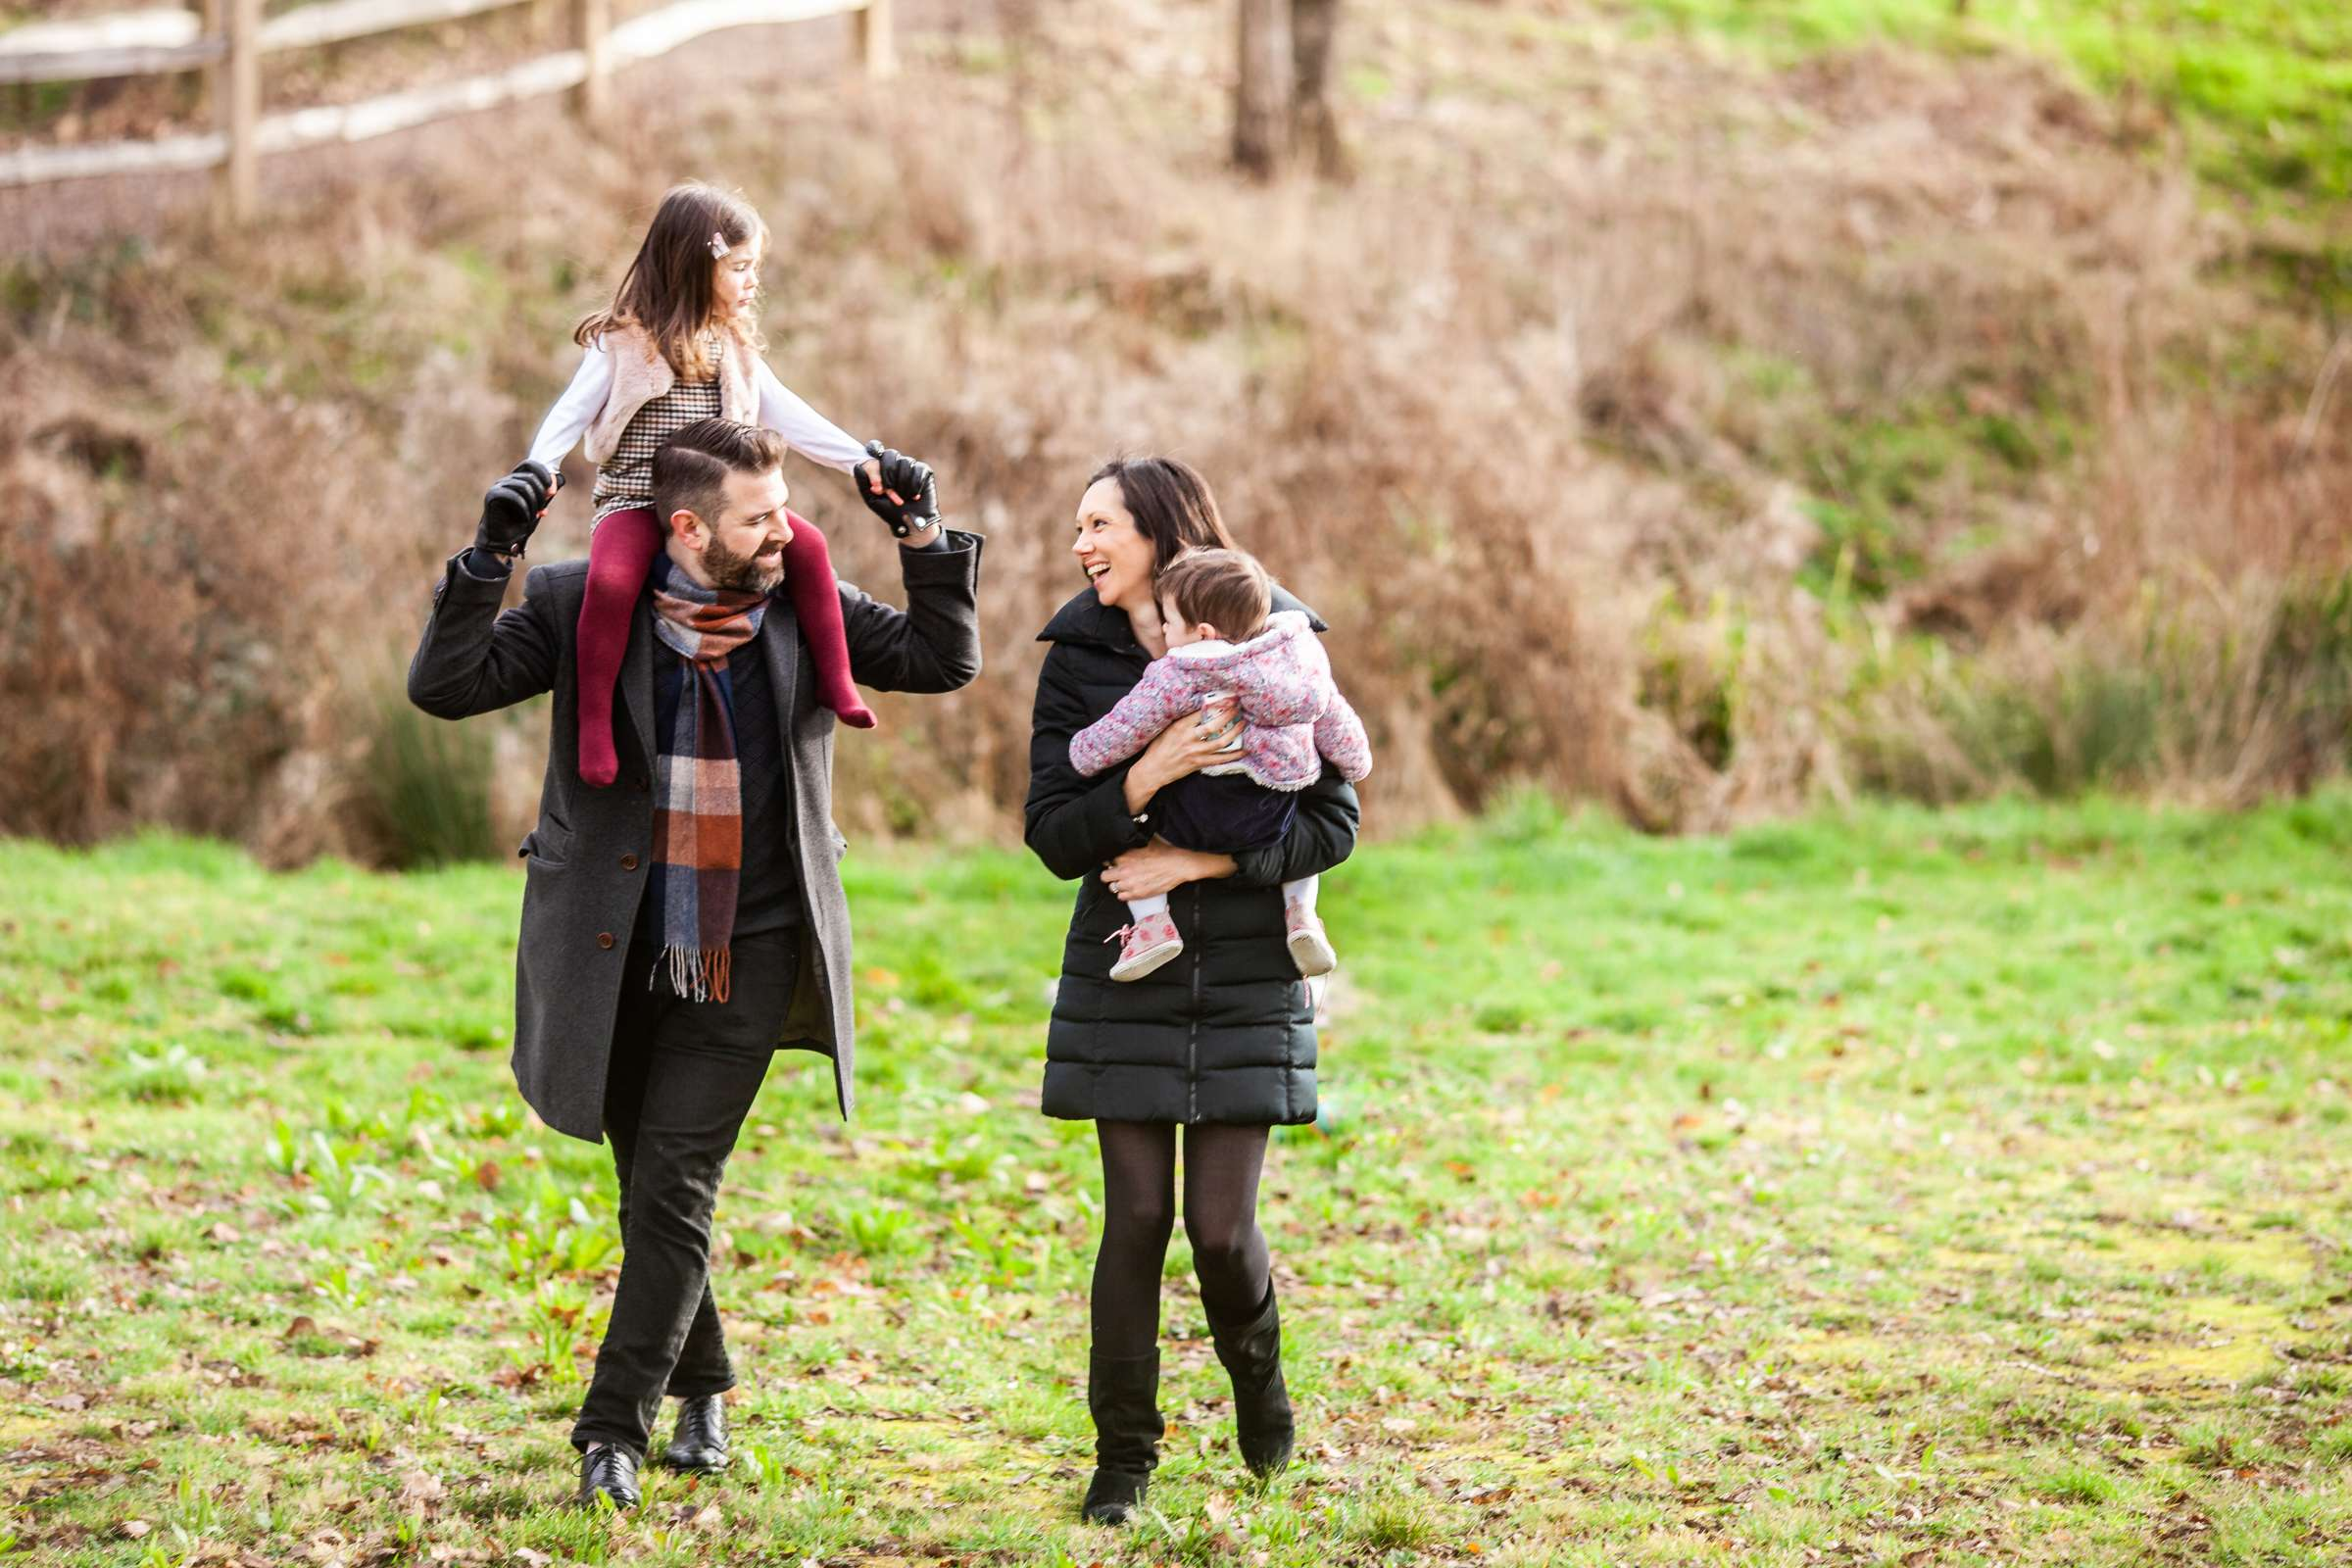 An outdoor portrait photo of a family with a baby and child walking wearing winter coats